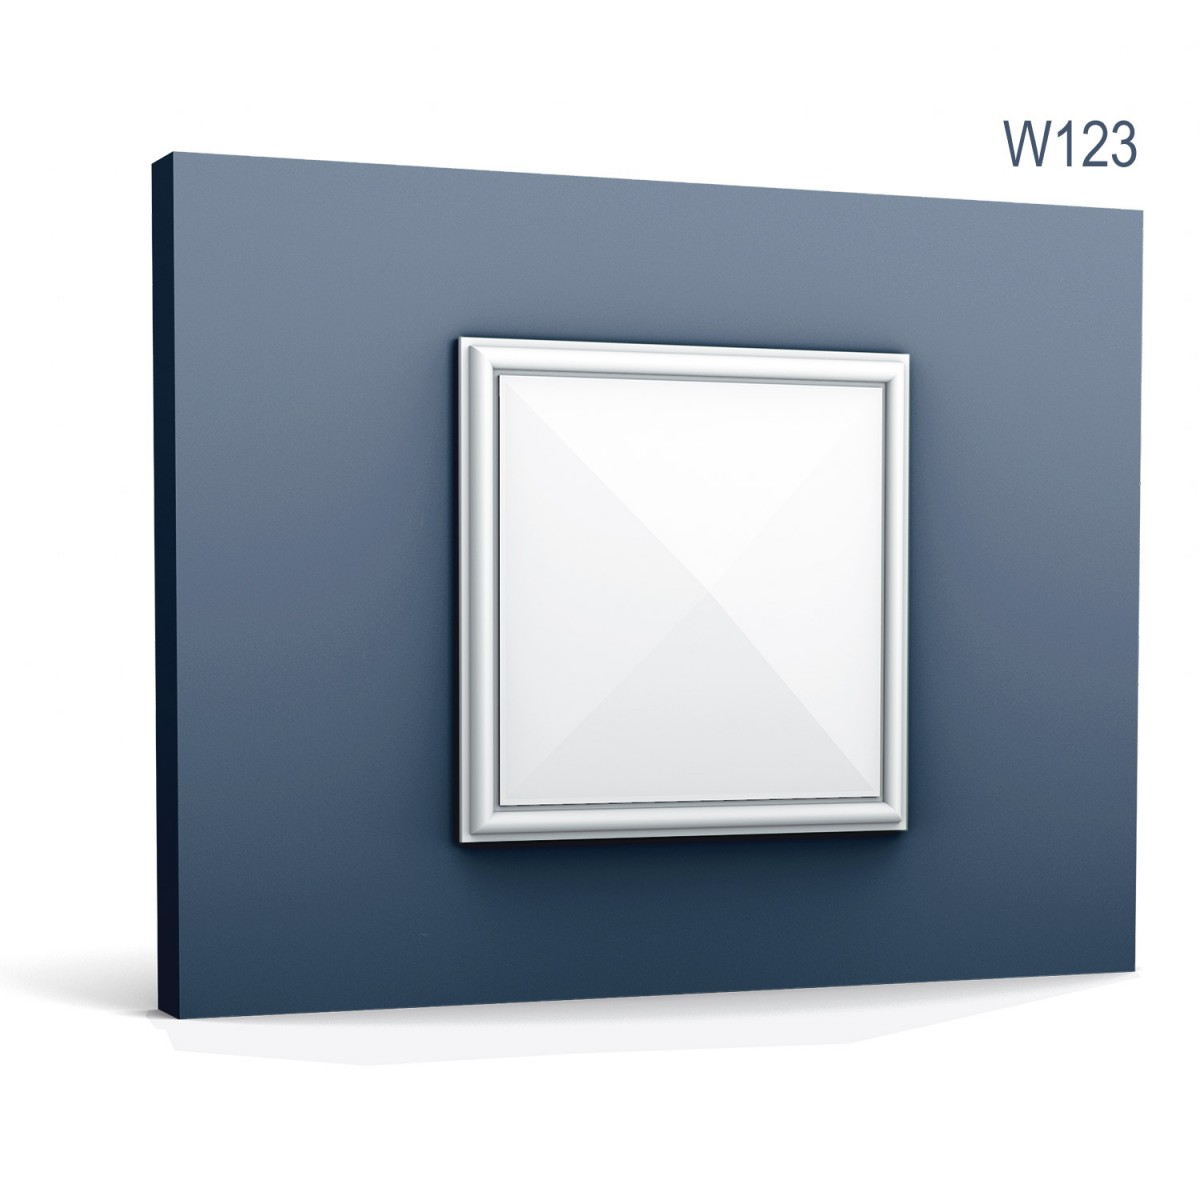 Panel Modern W123, Dimensiuni: 33.3 X 33.3 X 3.5 cm, Orac Decor